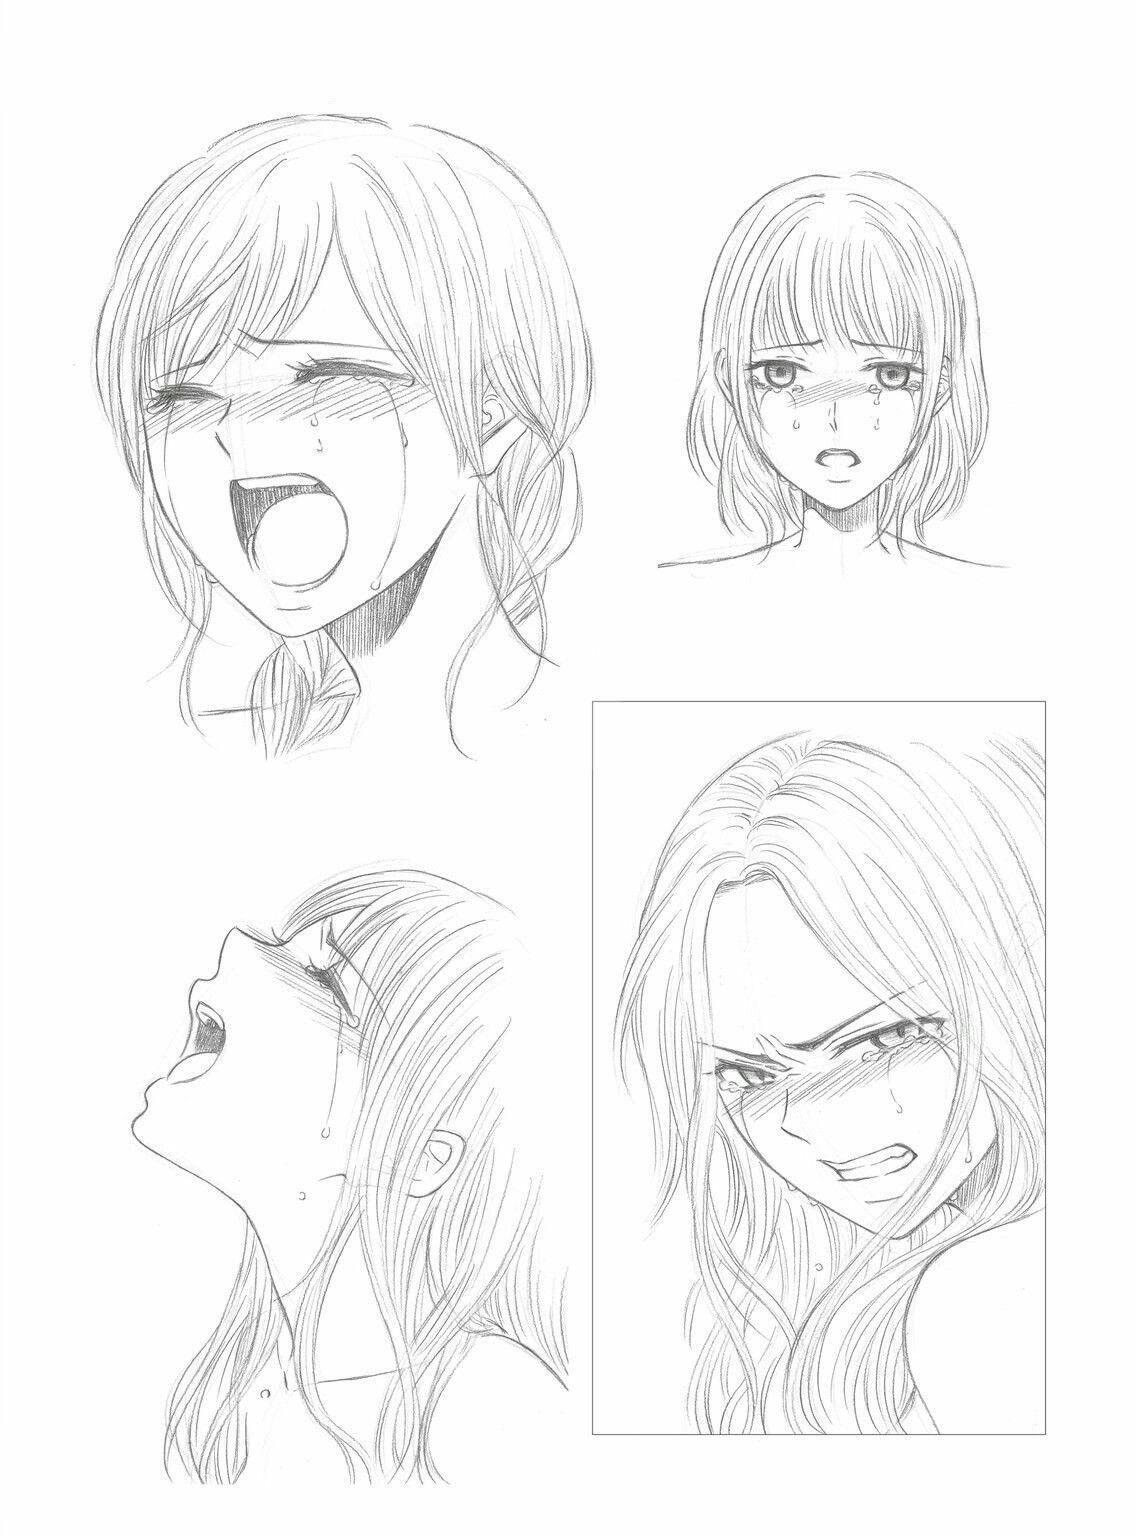 Crying girl drawing reference